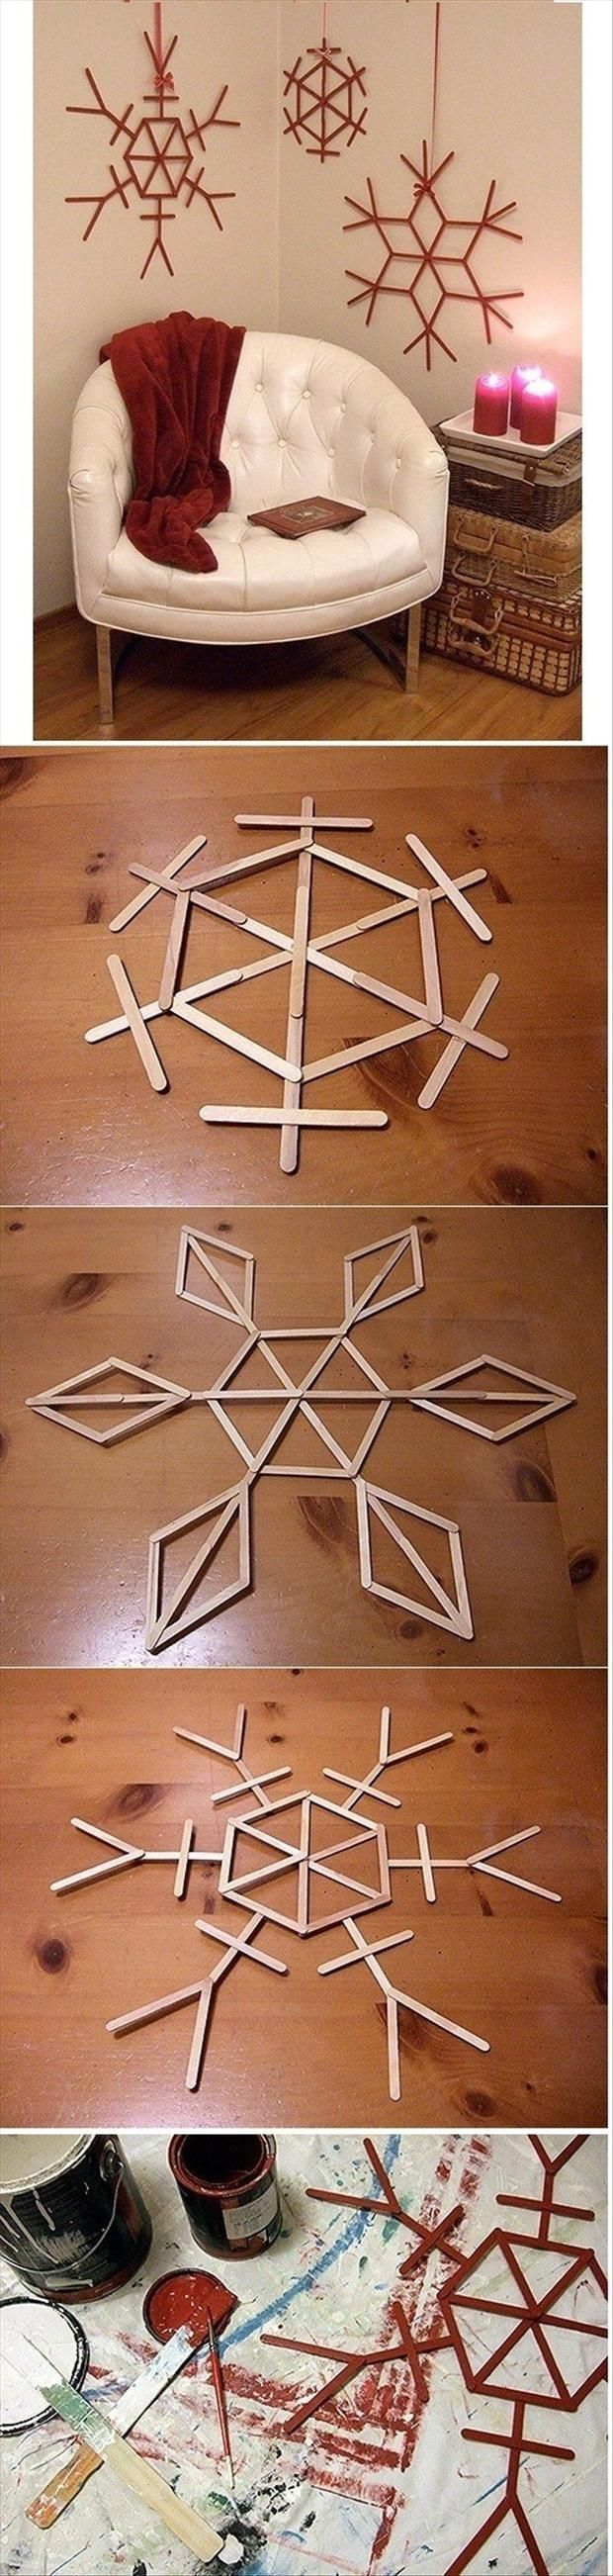 Get Ahead and Prepare for Christmas With These 31 Magic DIY Christmas Decorations homesthetics (5)